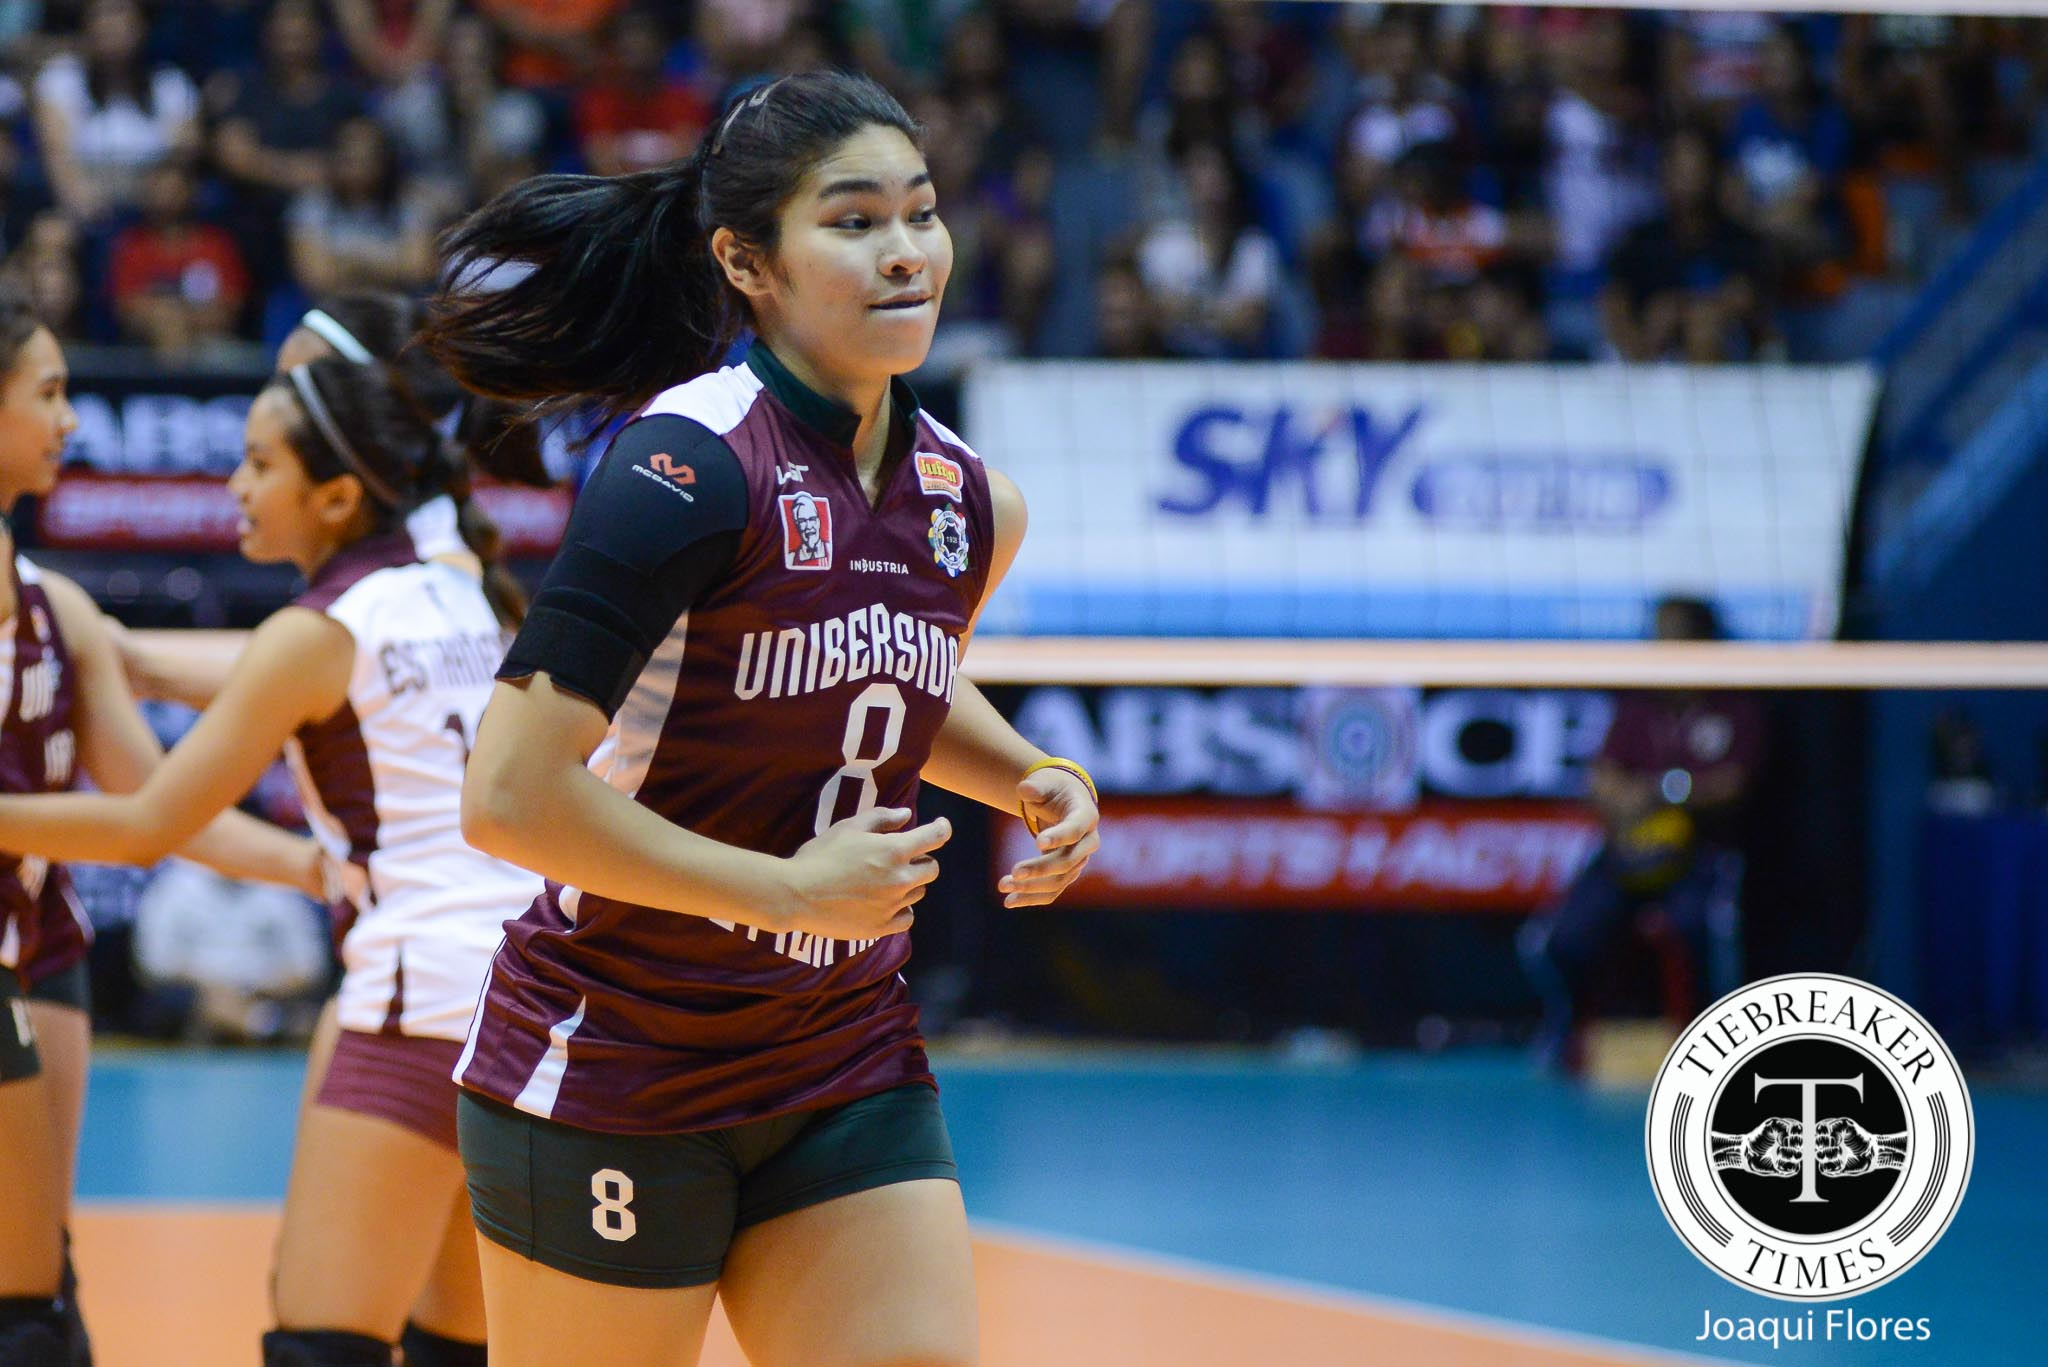 Tiebreaker Times Bersola: Better days ahead for UP News UAAP UP Volleyball  UP Women's Volleyball UAAP Season 78 Women's Volleyball UAAP Season 78 Kathy Bersola